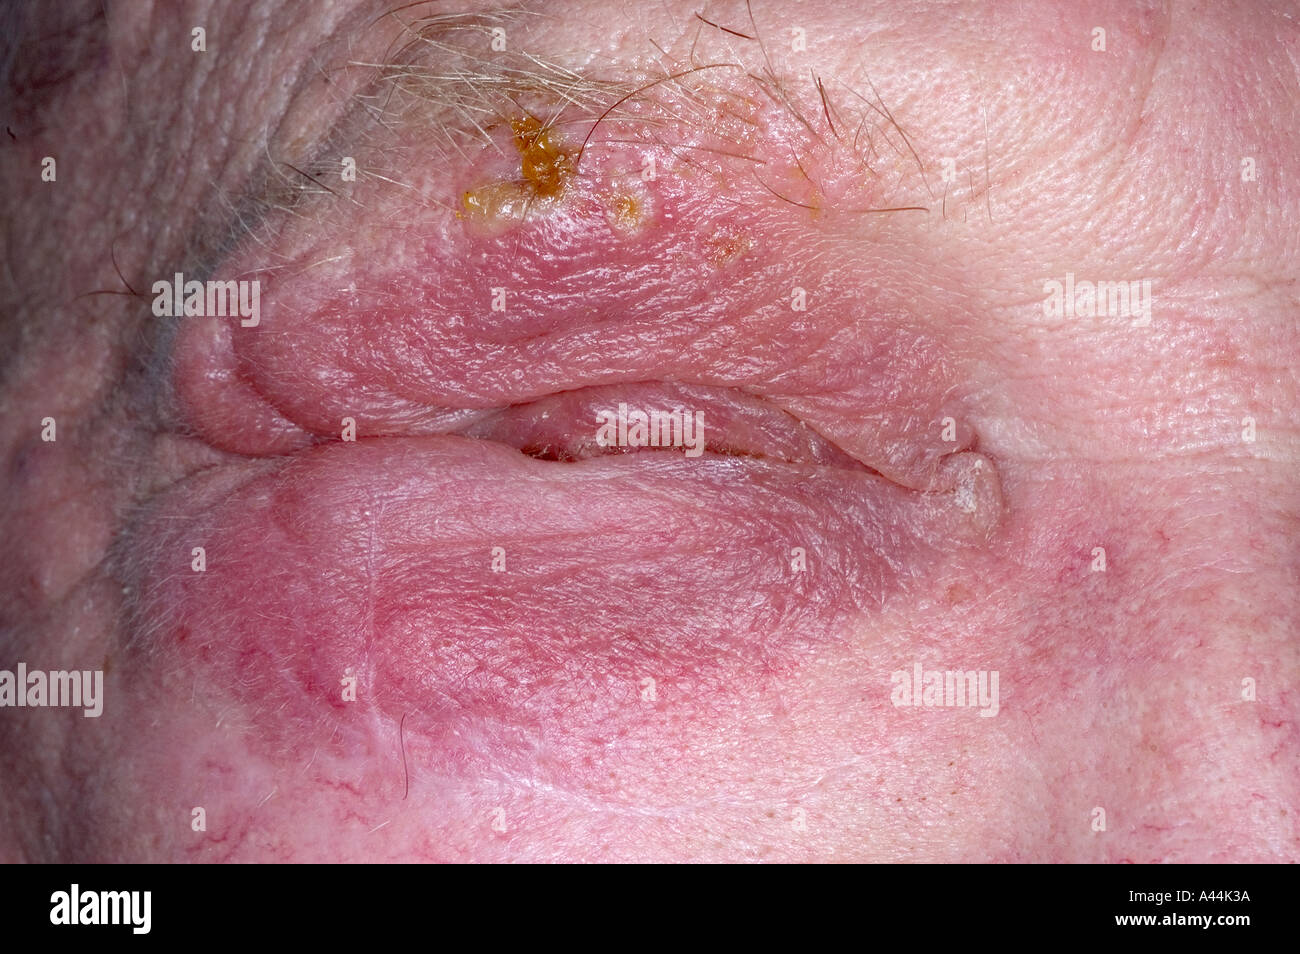 herpes rash on face